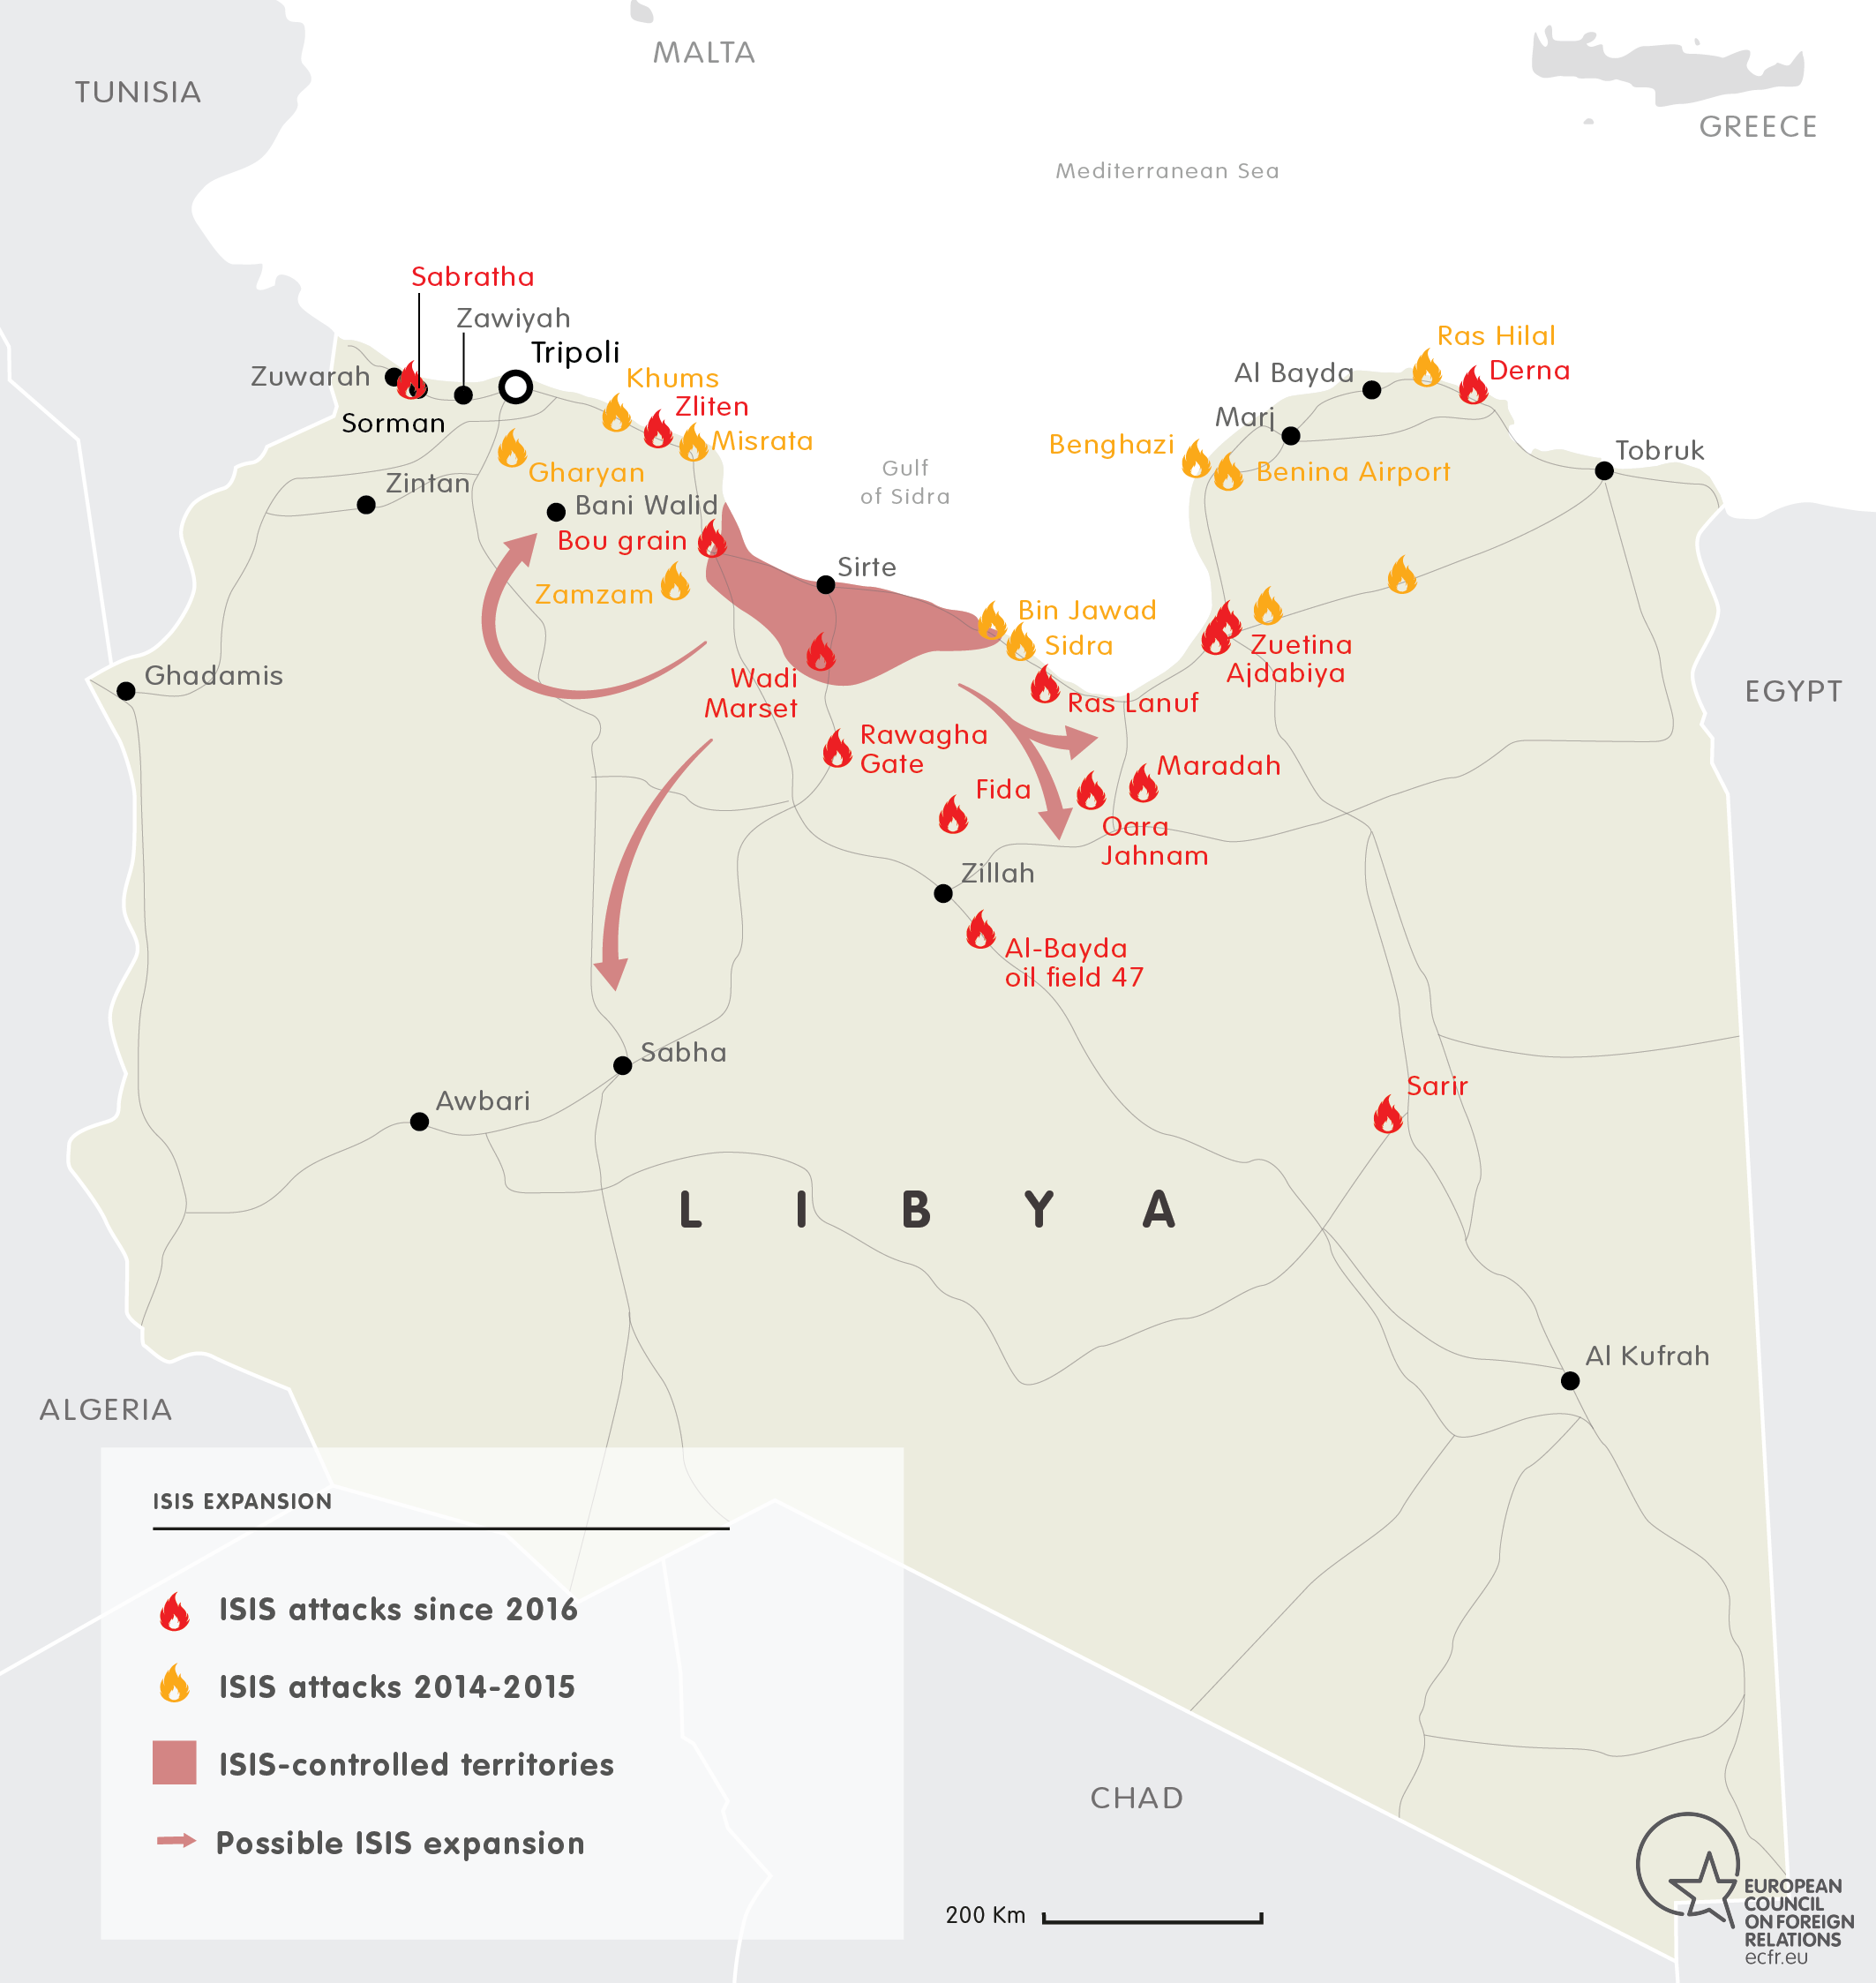 ISIS EXPANSION IN LIBYA 2015-2016